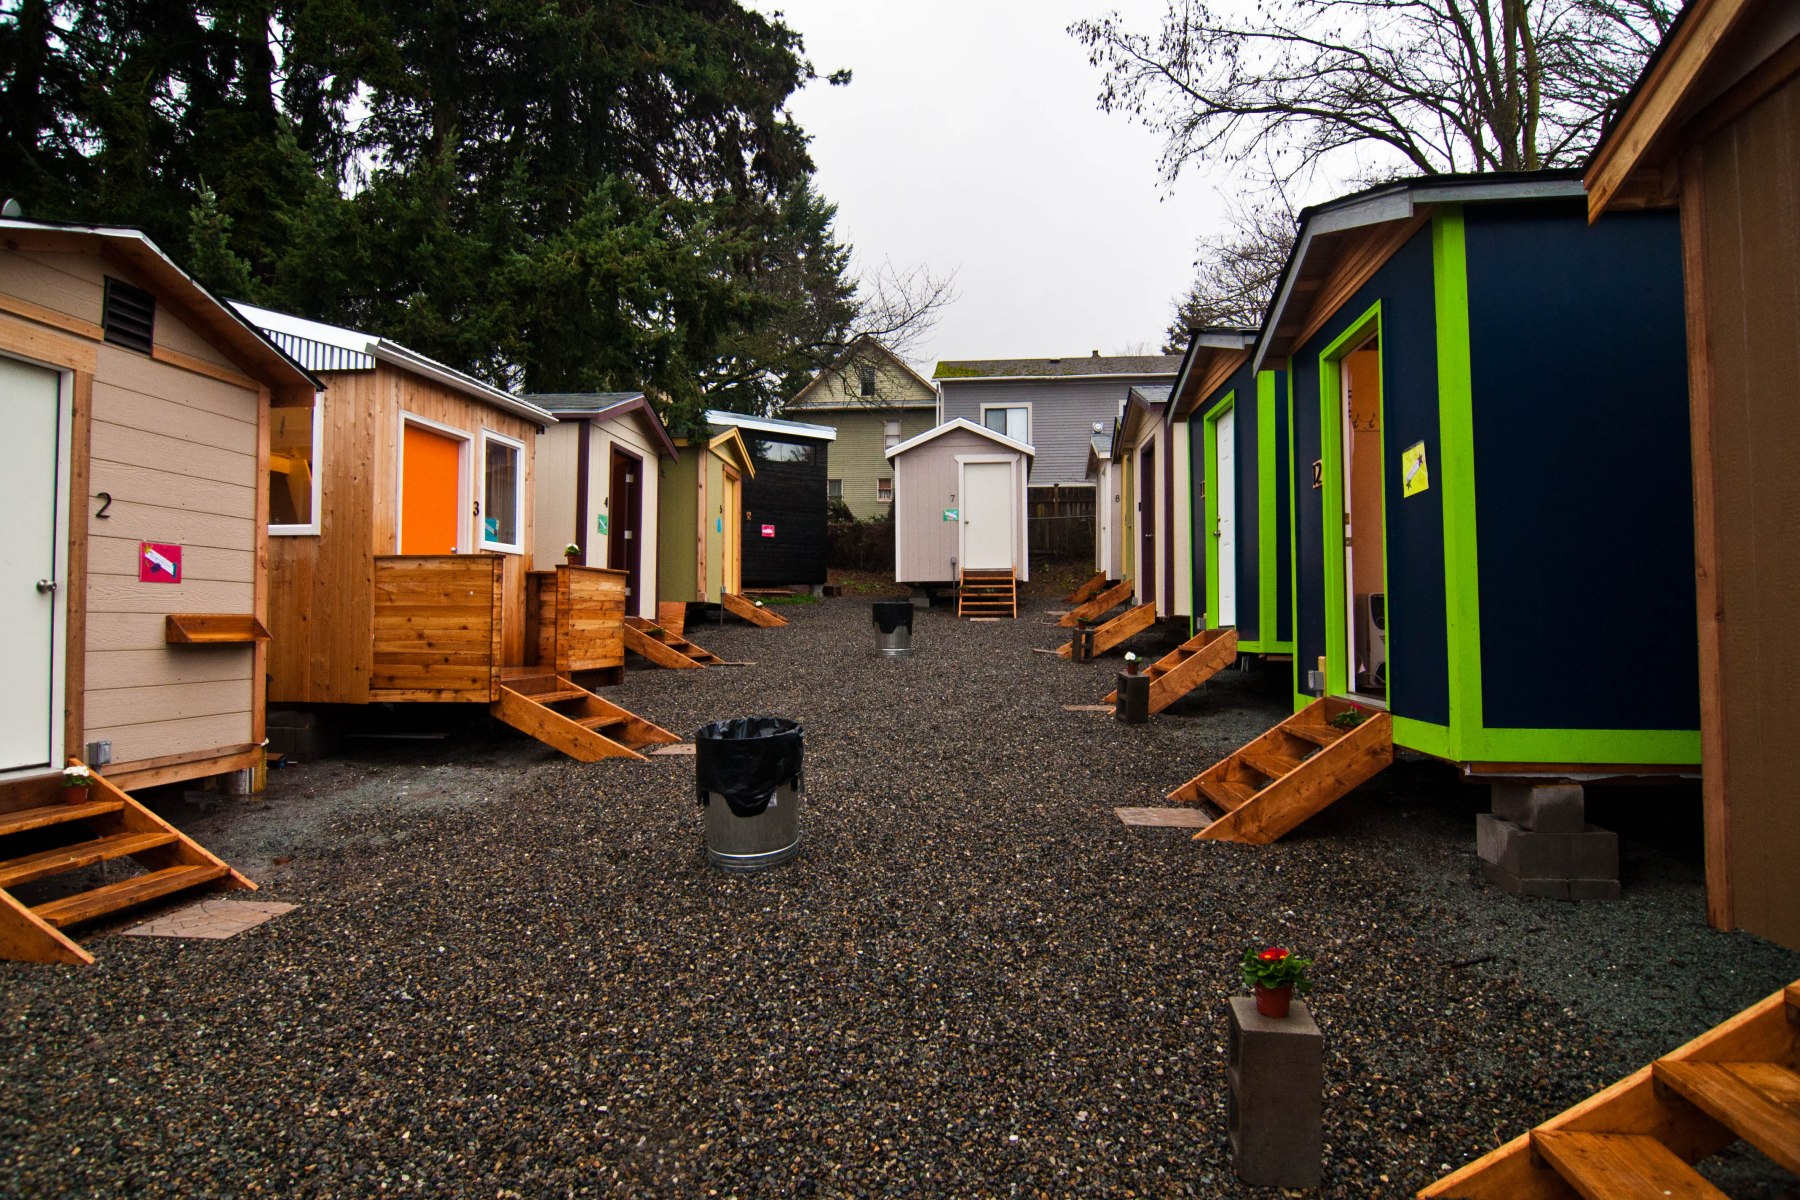 Say Yes to Tiny House Villages | The Urbanist